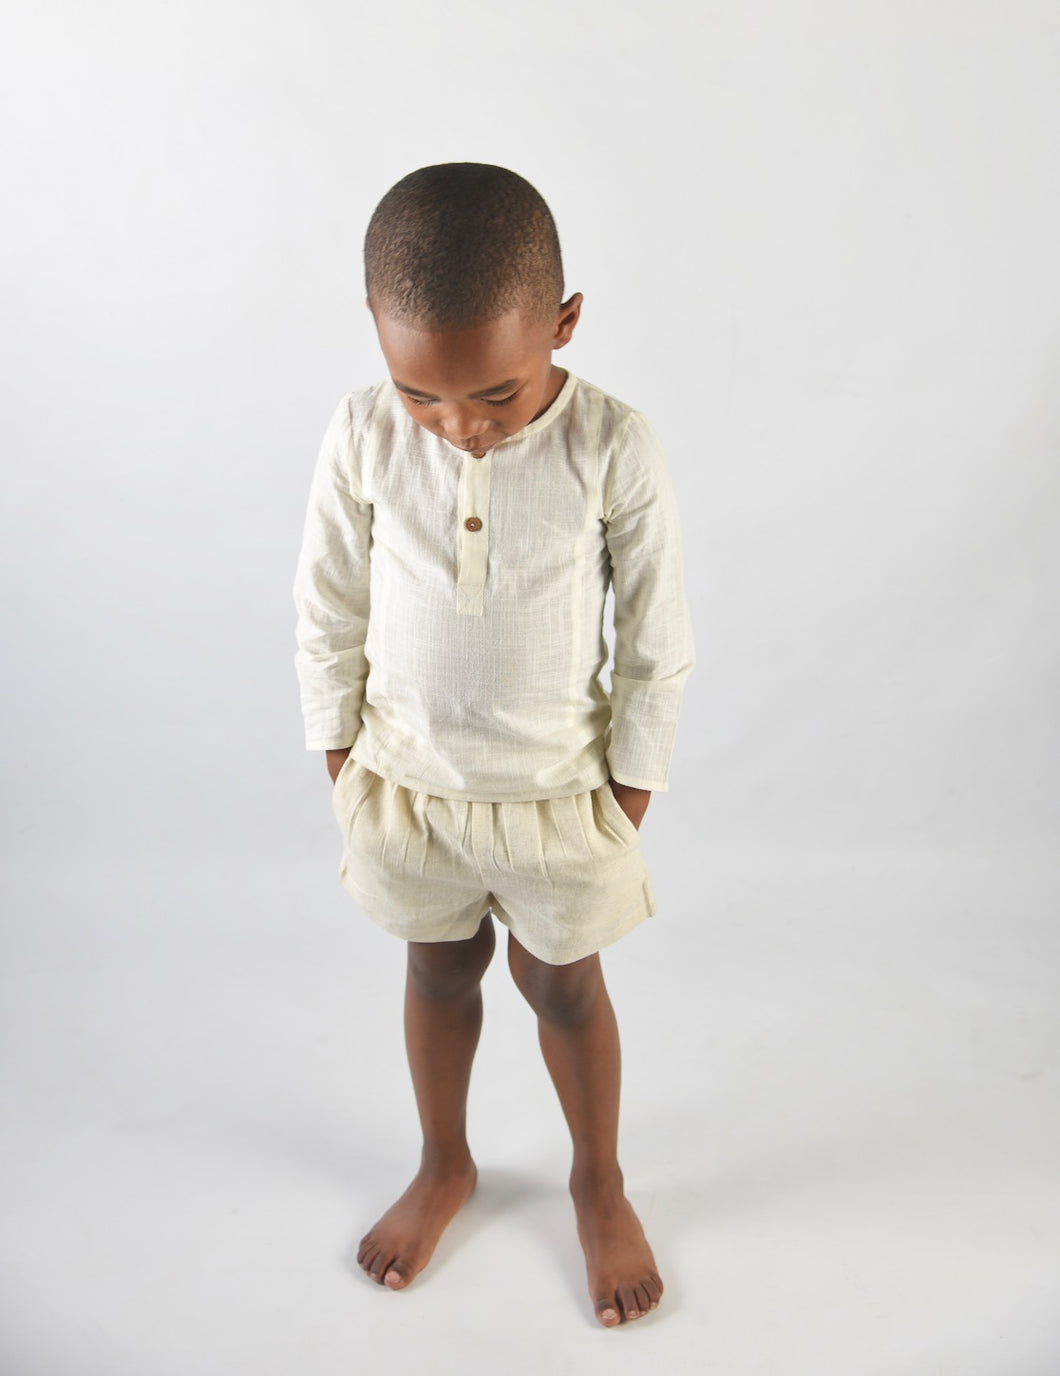 Boys Shirt & Shorts Set - Ivory - Kids Wholesale Boutique Clothing, Boys - Girls Dresses, Yo Baby Wholesale - Yo Baby